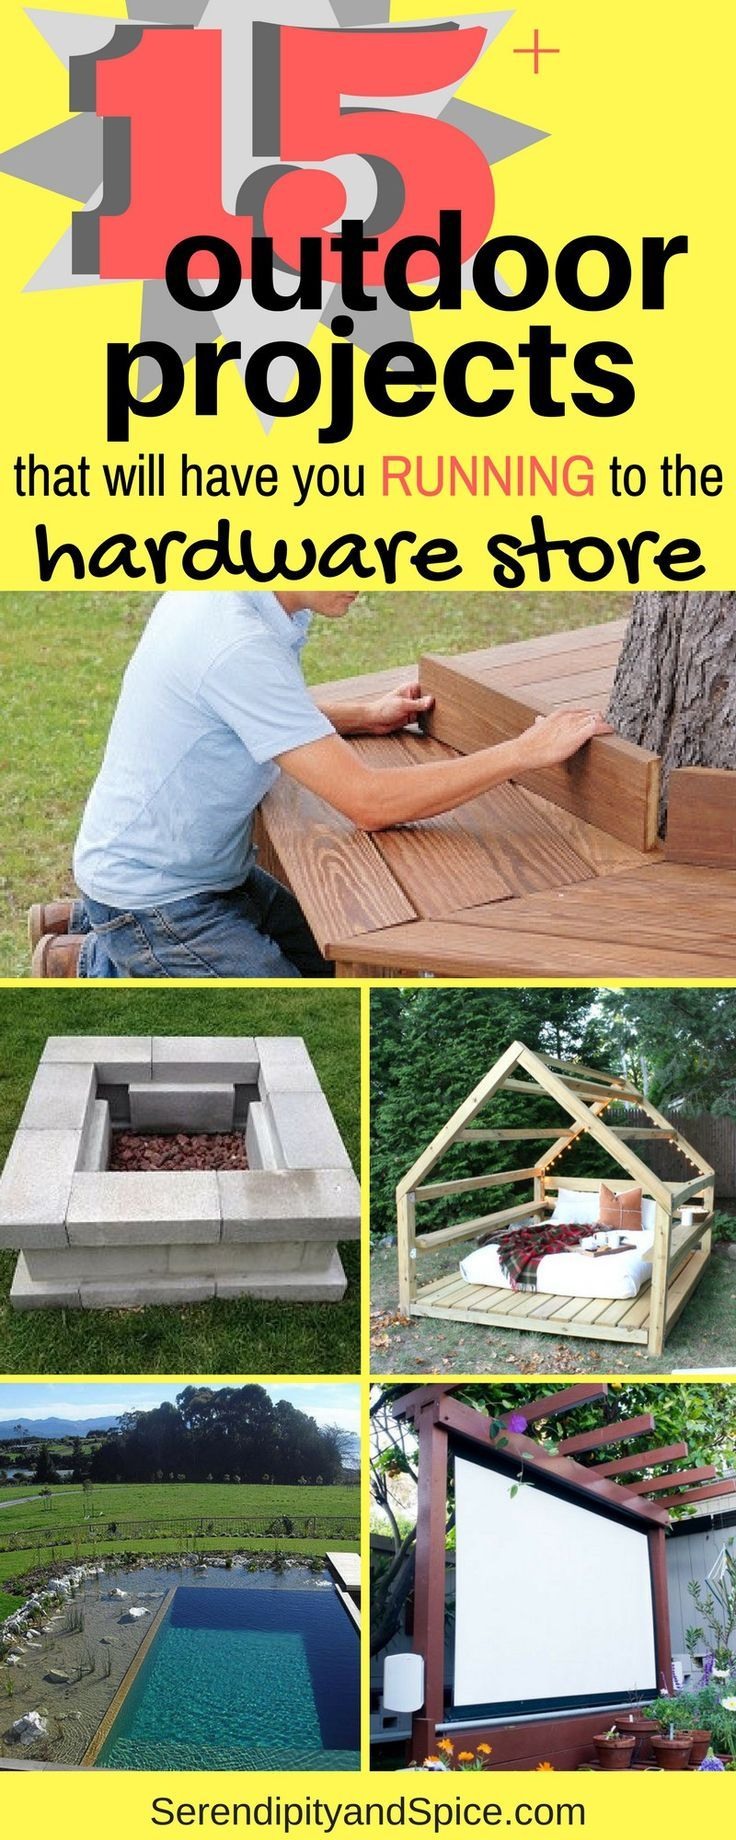 Epic outdoor projects to make you the envy of the neighbors campo diy outdoor projects that are amazing and will make your summer epic add these do solutioingenieria Choice Image